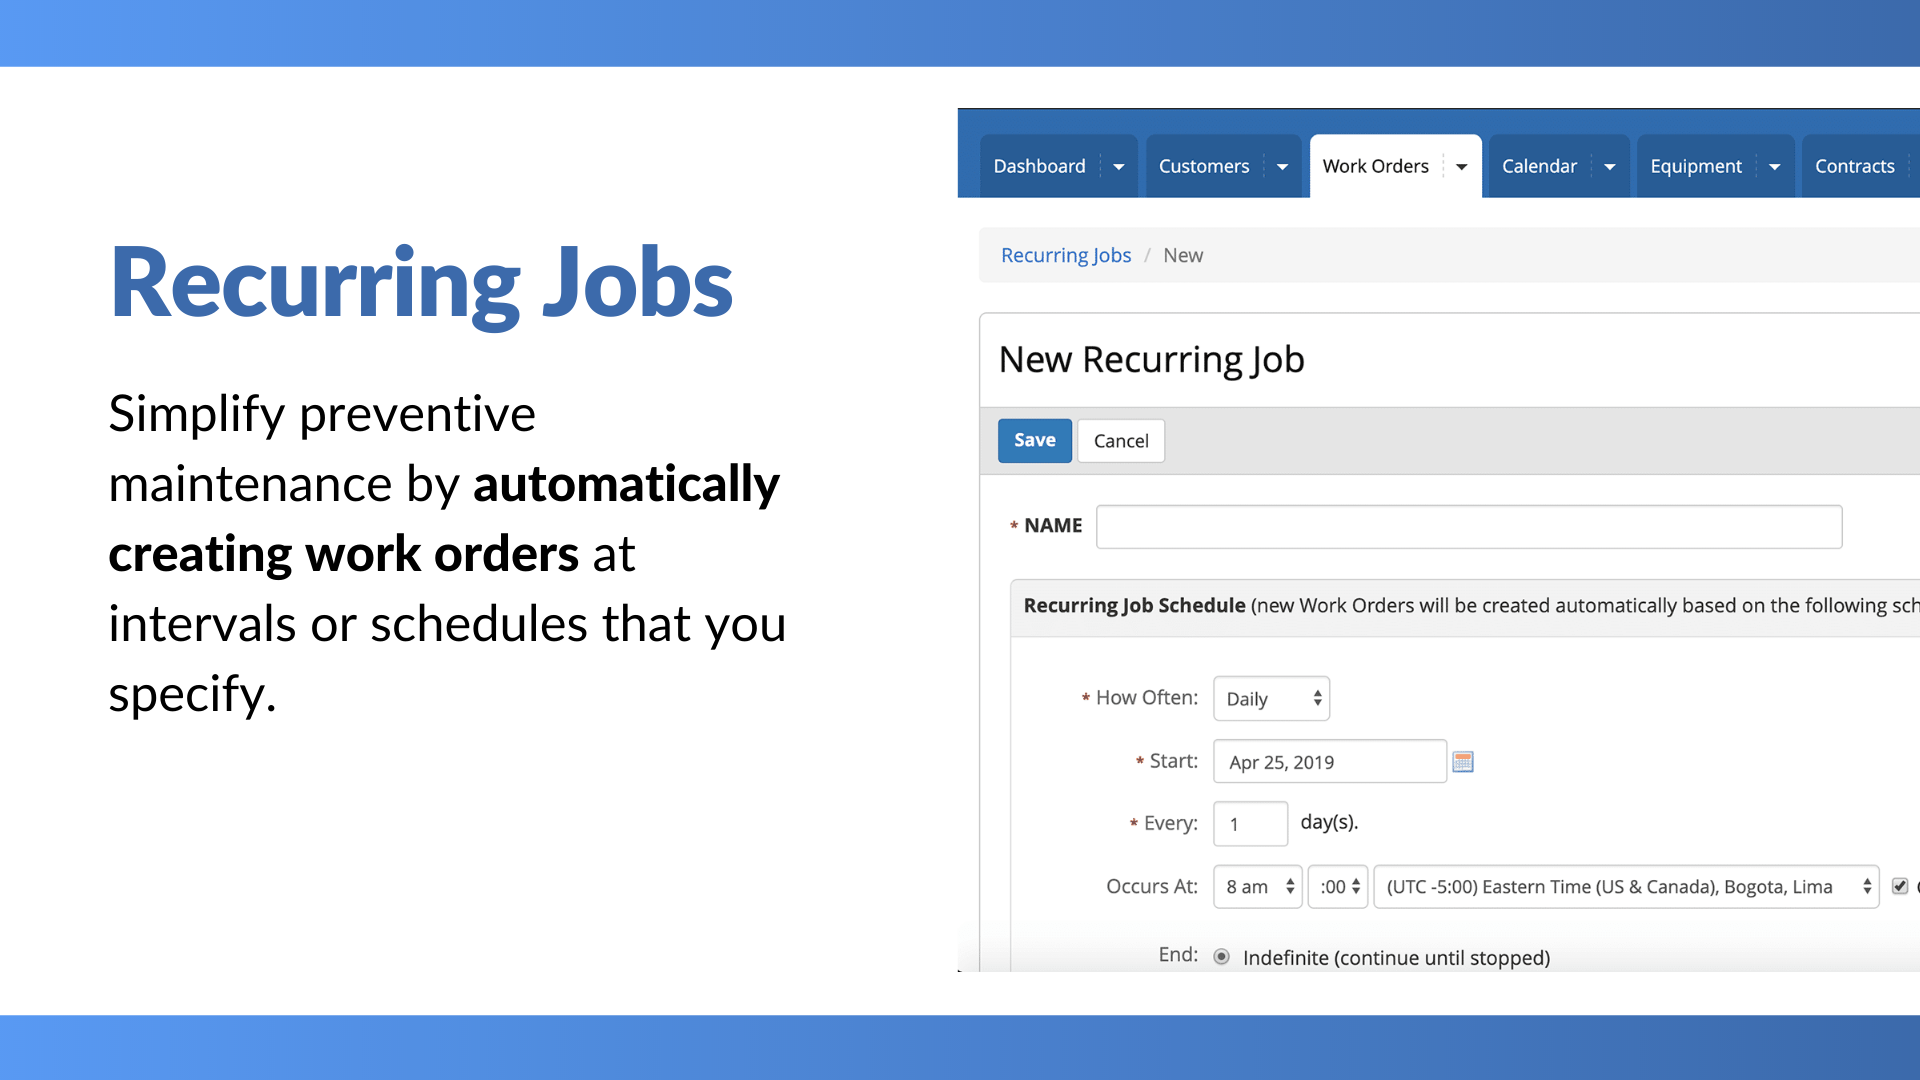 Simplify preventive maintenance with recurring jobs at intervals or schedules you specify.